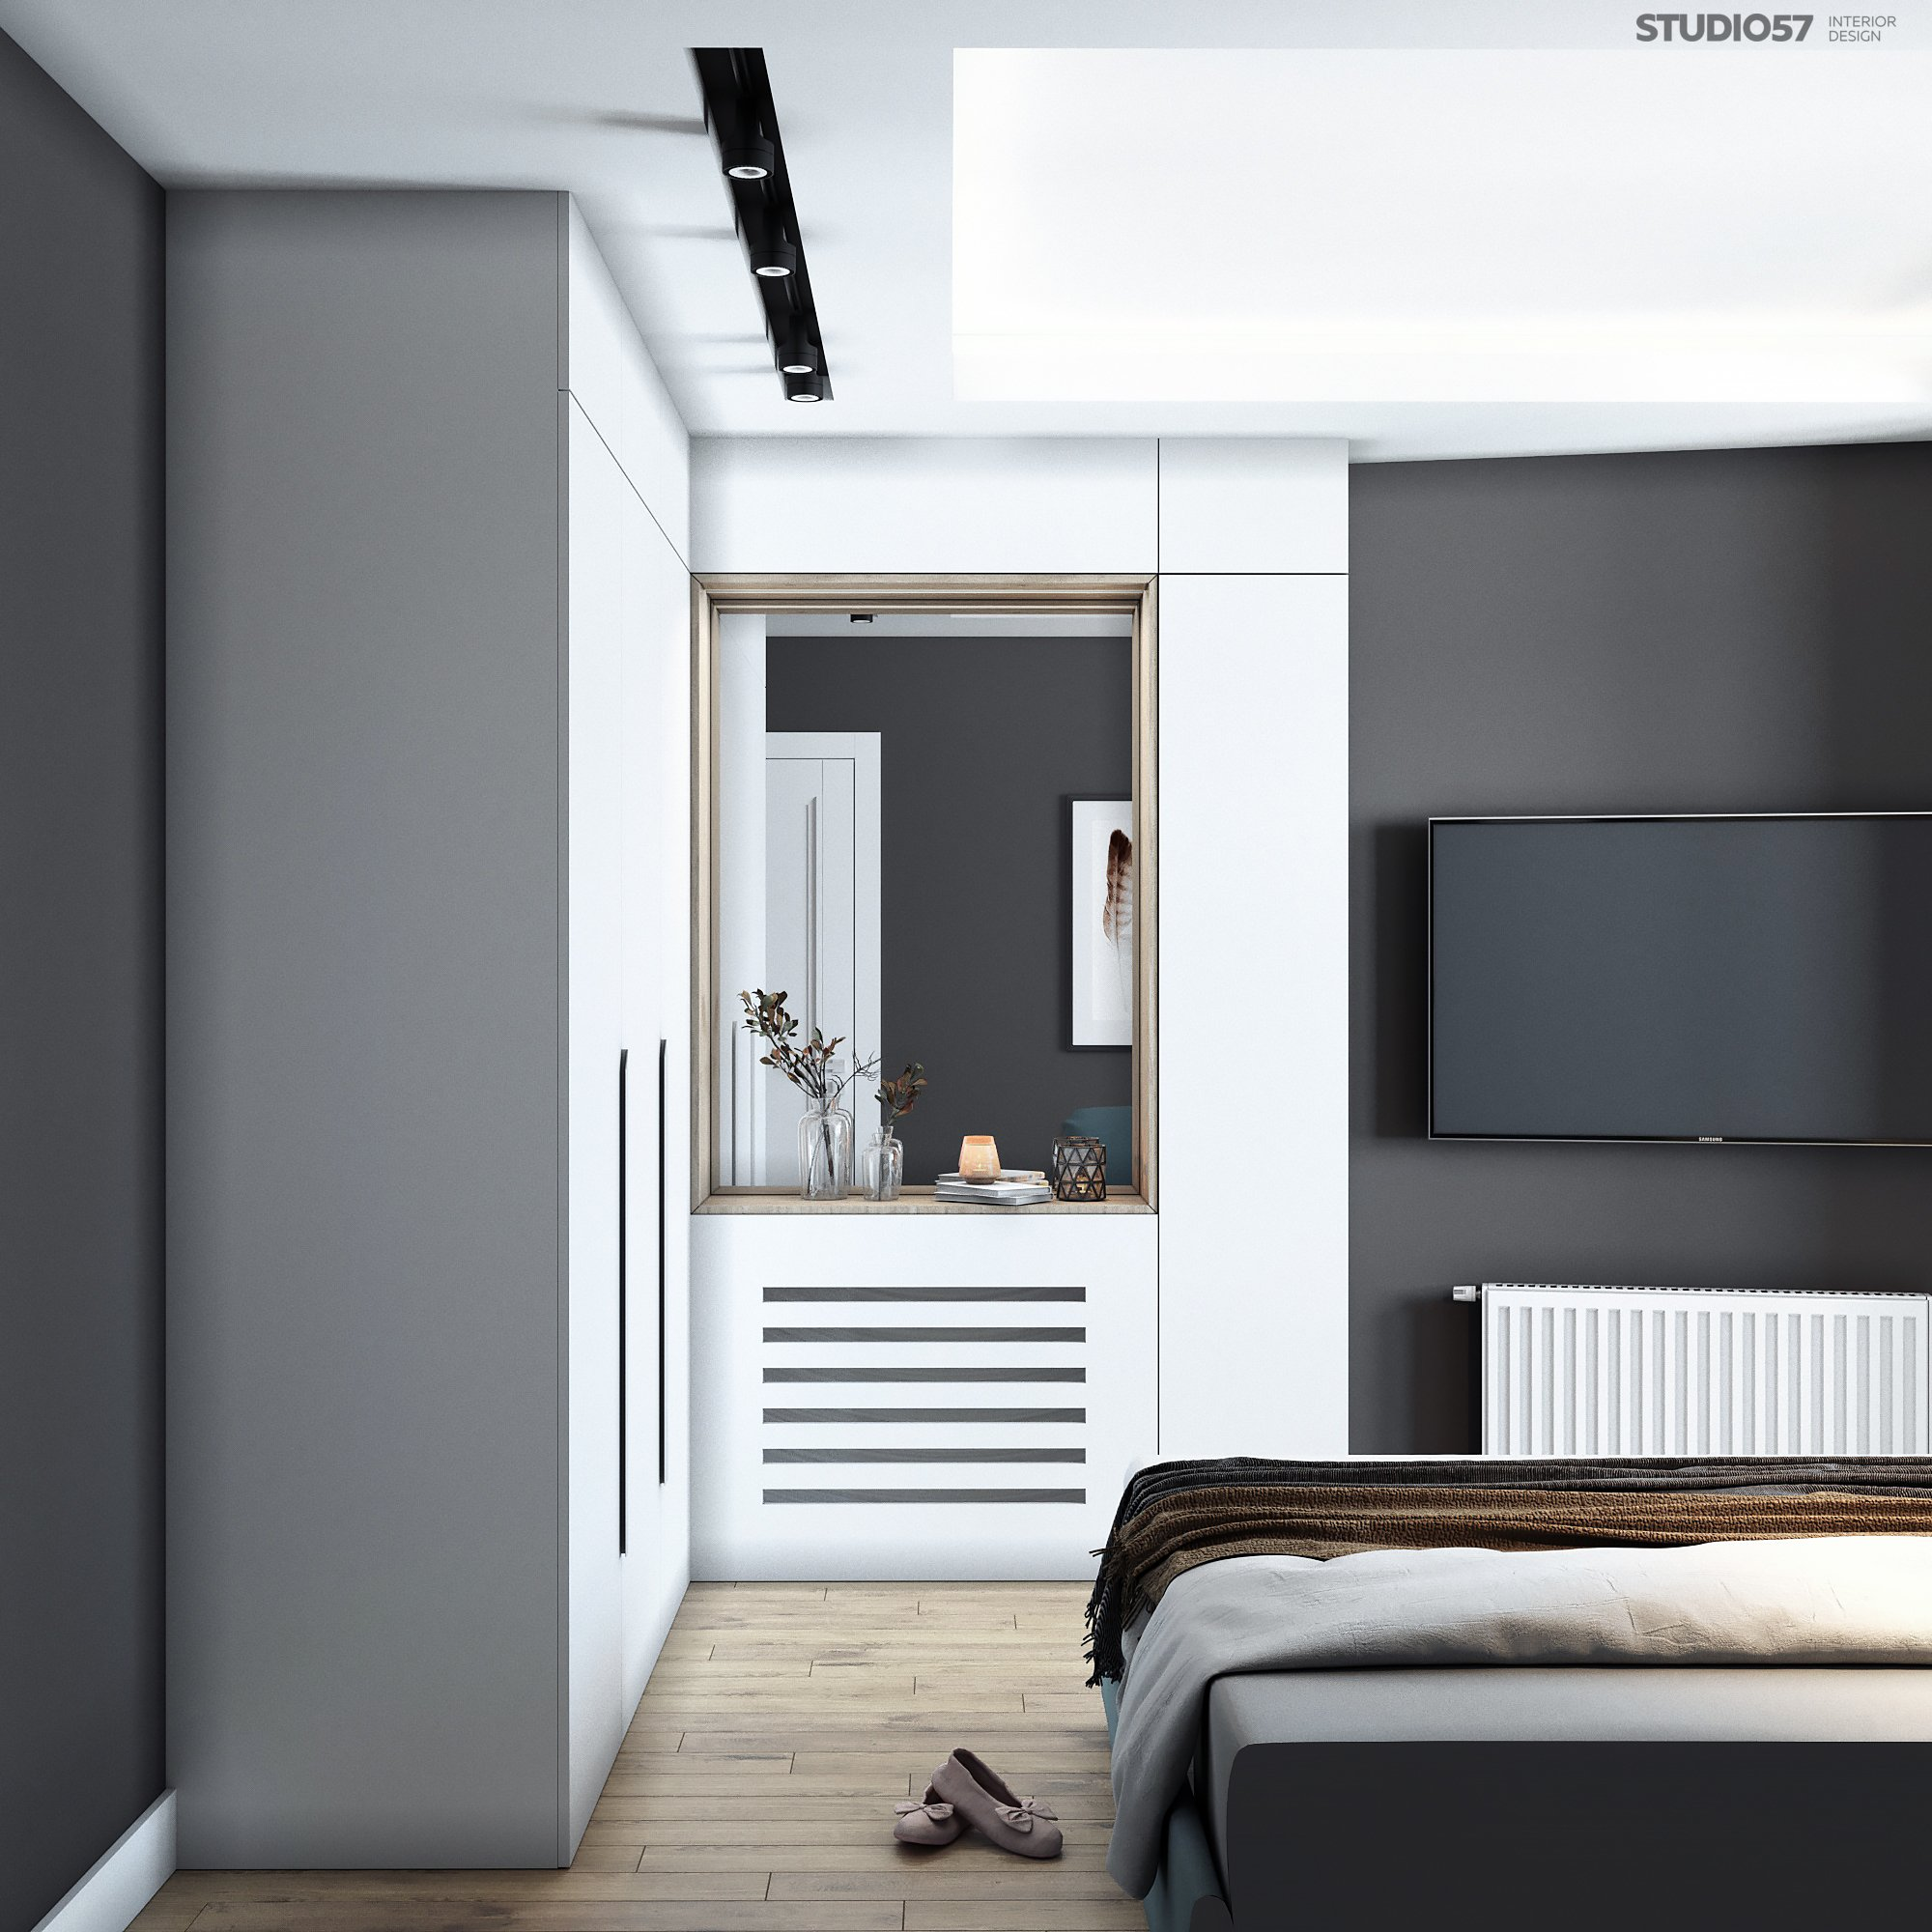 Bedroom in gray colors picture